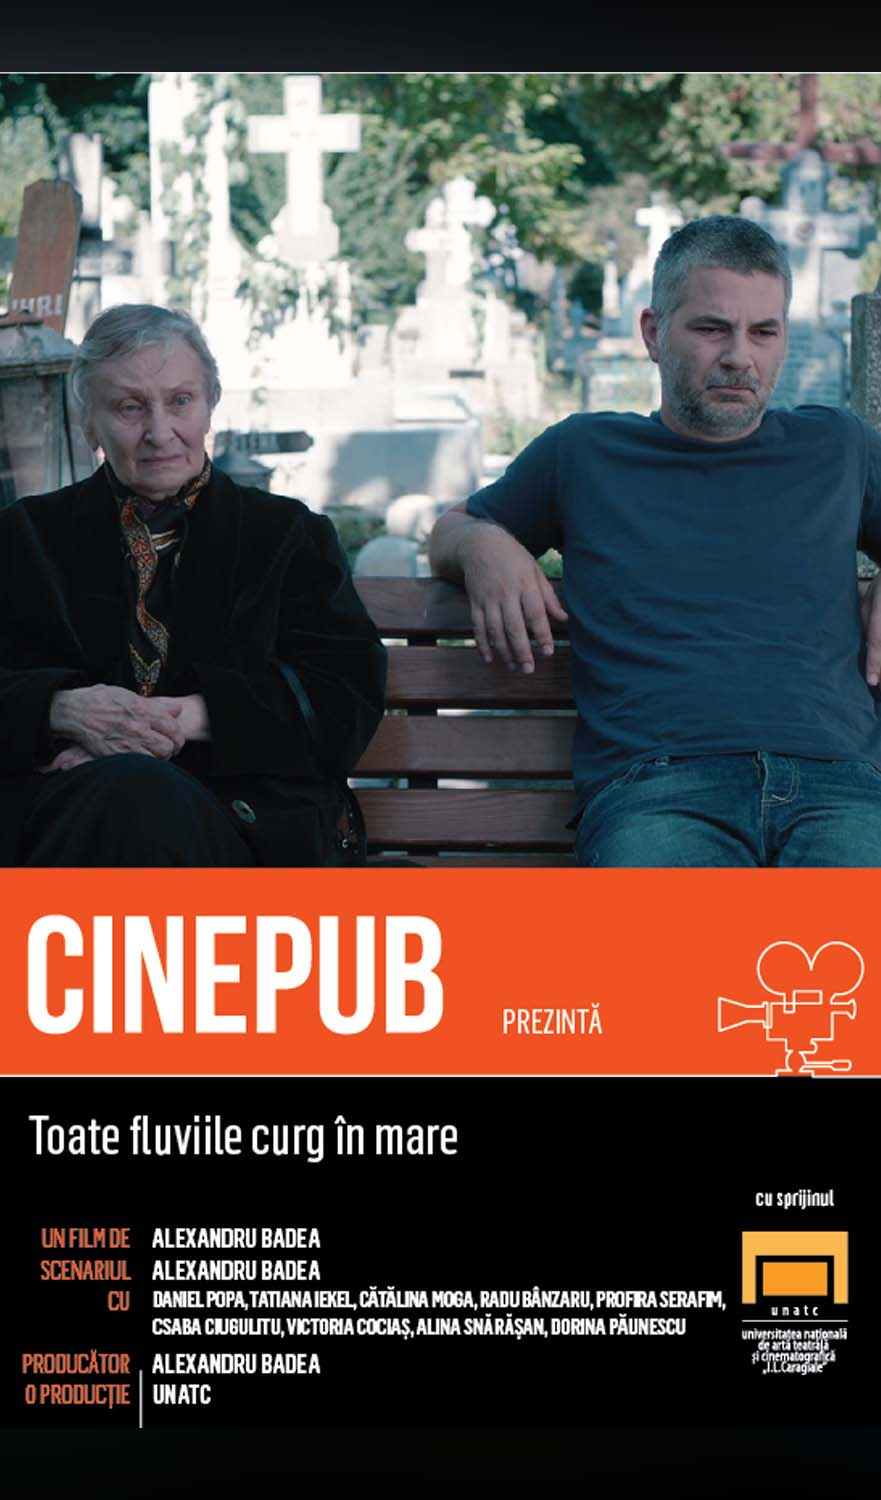 Poster-toate-fluviile-curg-in-mare-cinepub